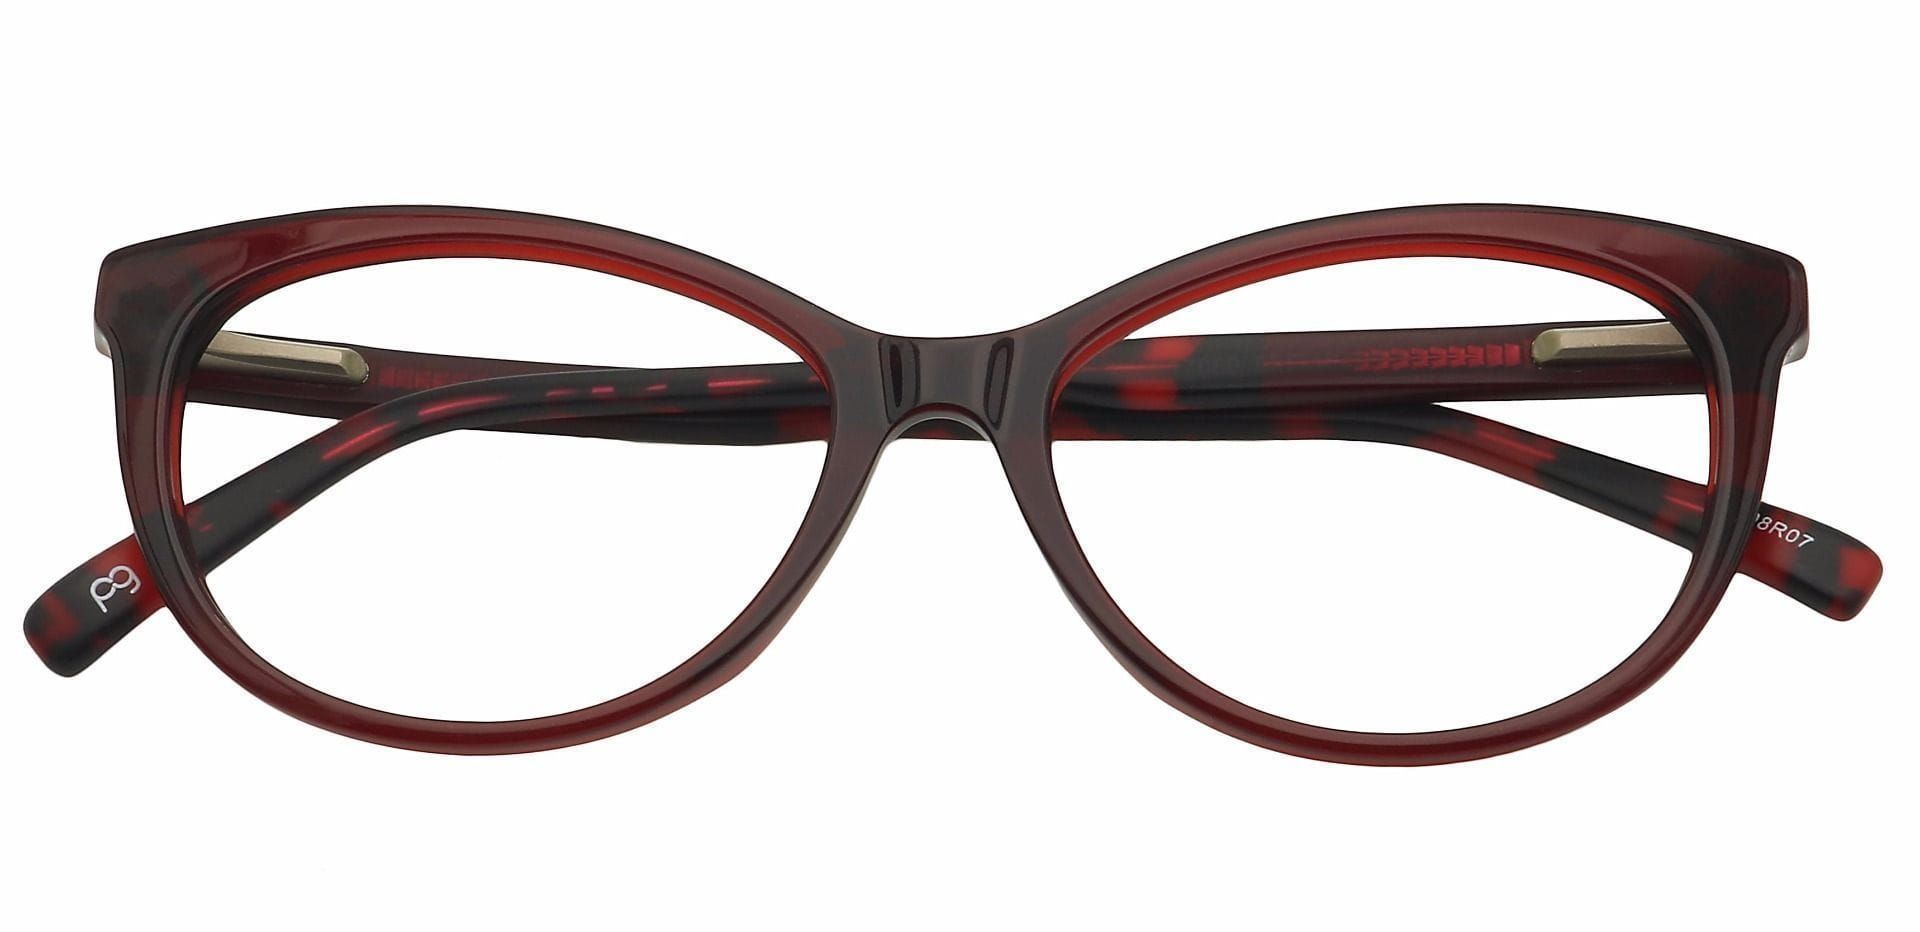 Iris Cat-Eye Lined Bifocal Glasses - Red